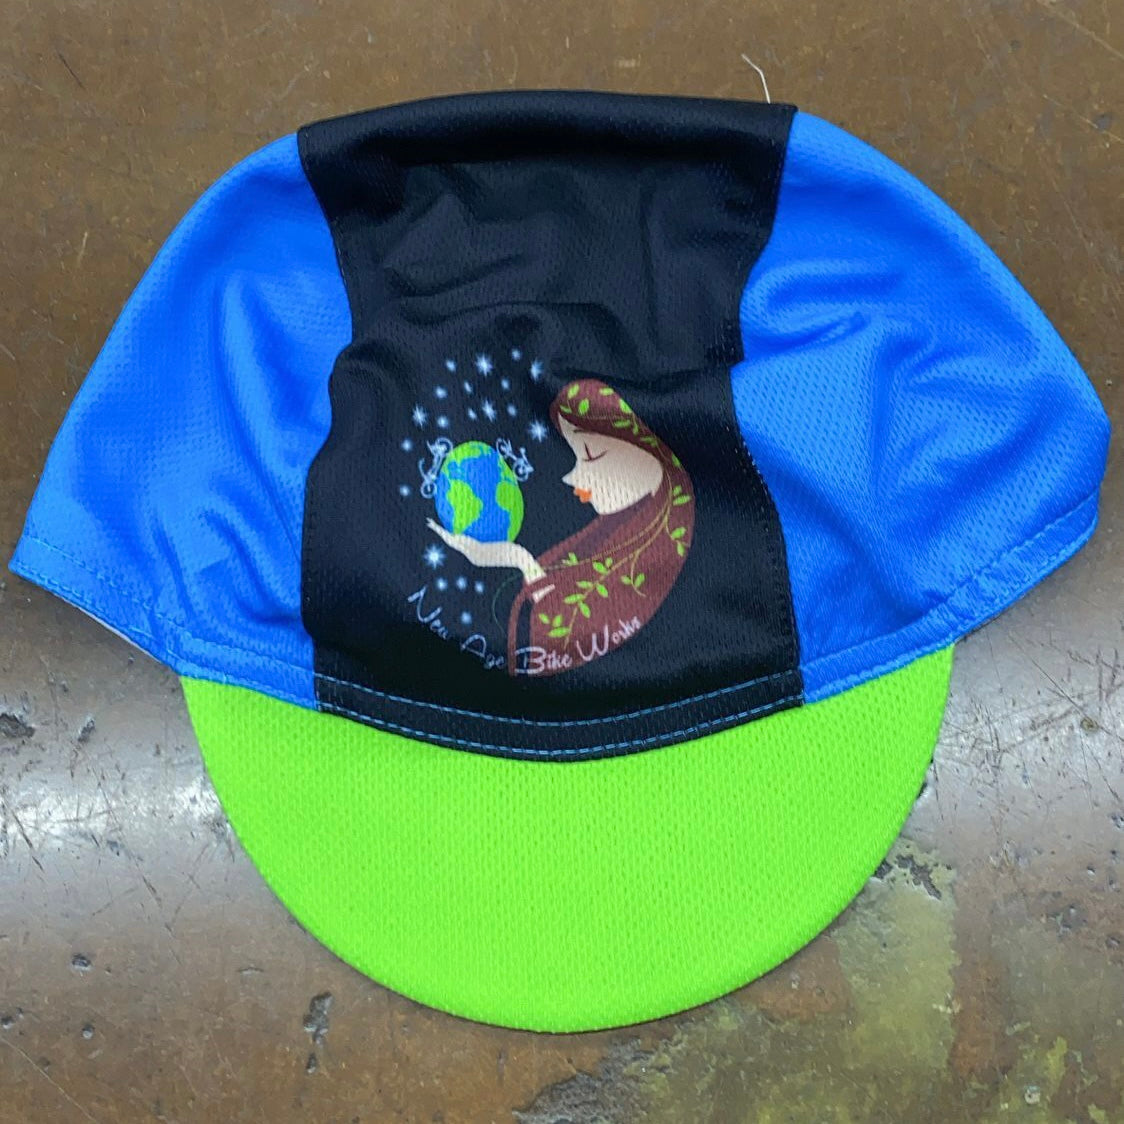 NABW Cycling Cap